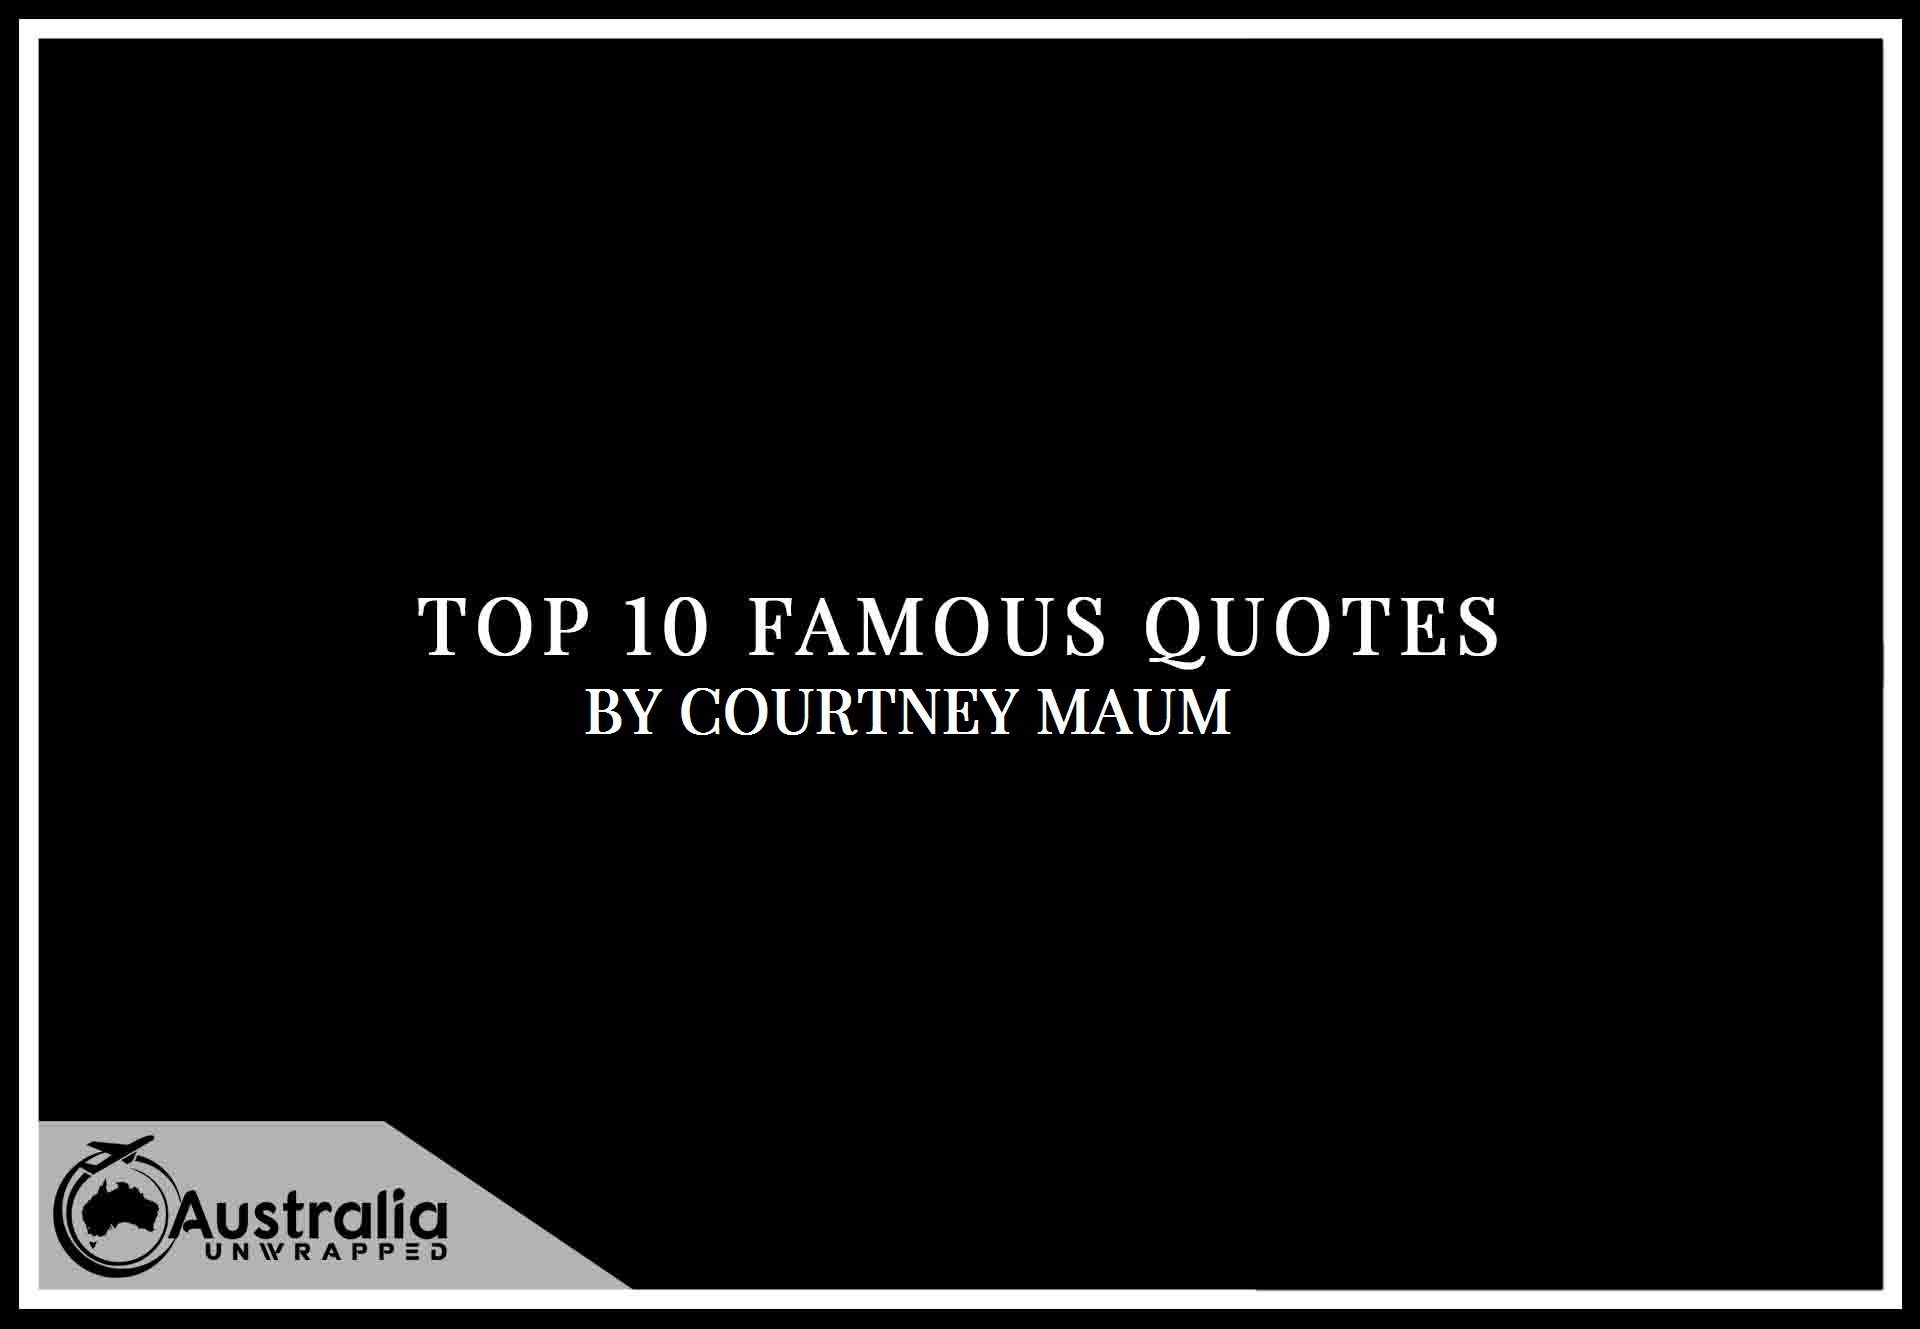 Courtney Maum's Top 10 Popular and Famous Quotes